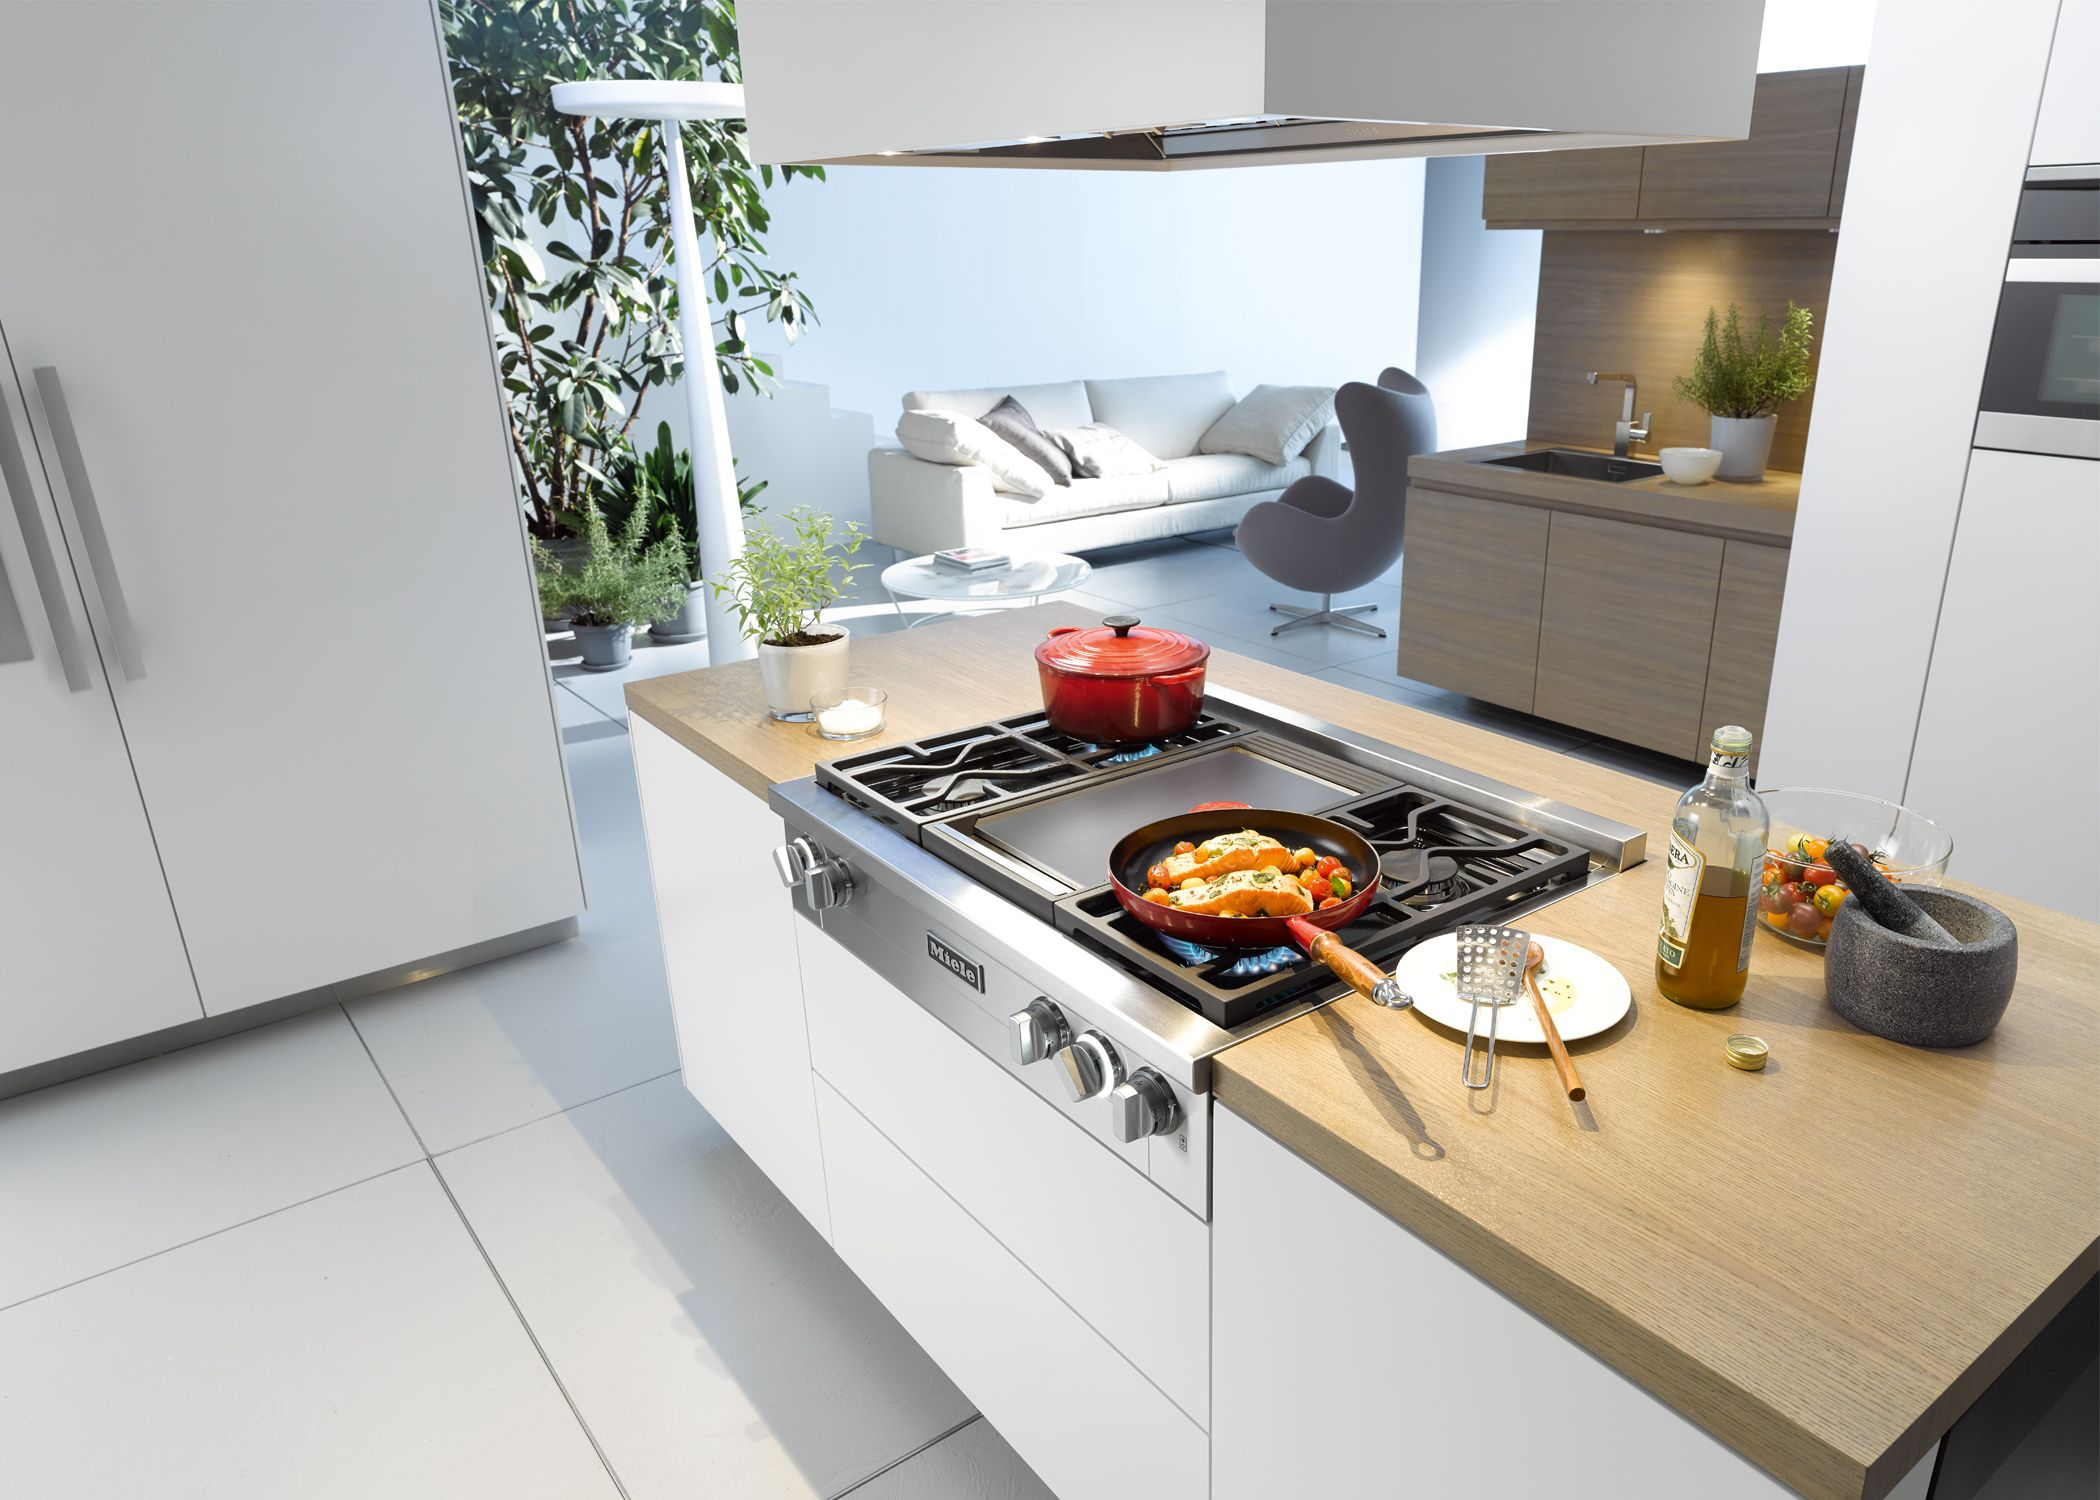 Miele Rangetop Cooktop with builtin griddle Miele Wall Ovens